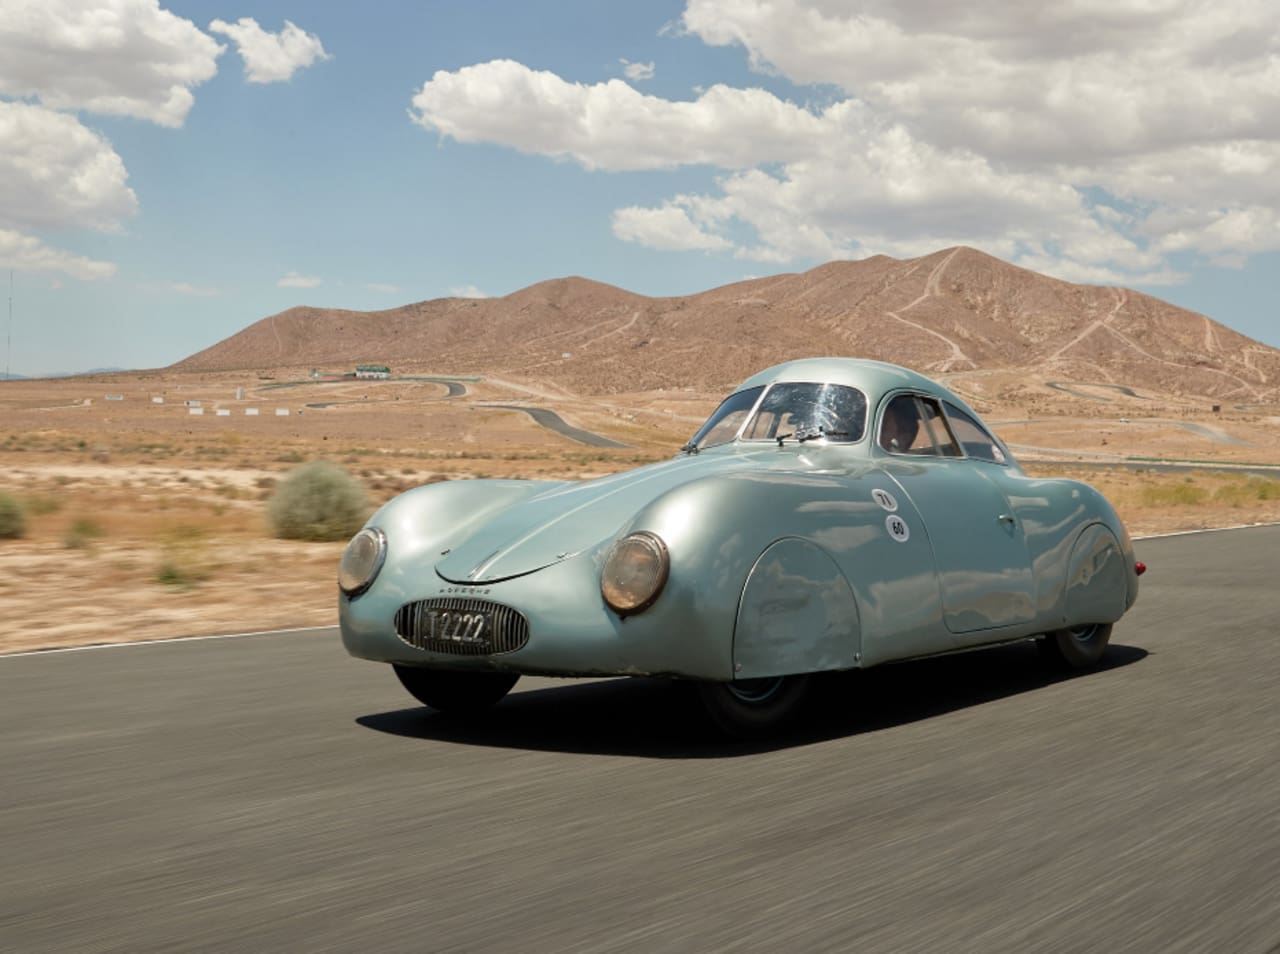 This is the World's Oldest, Surviving Porsche